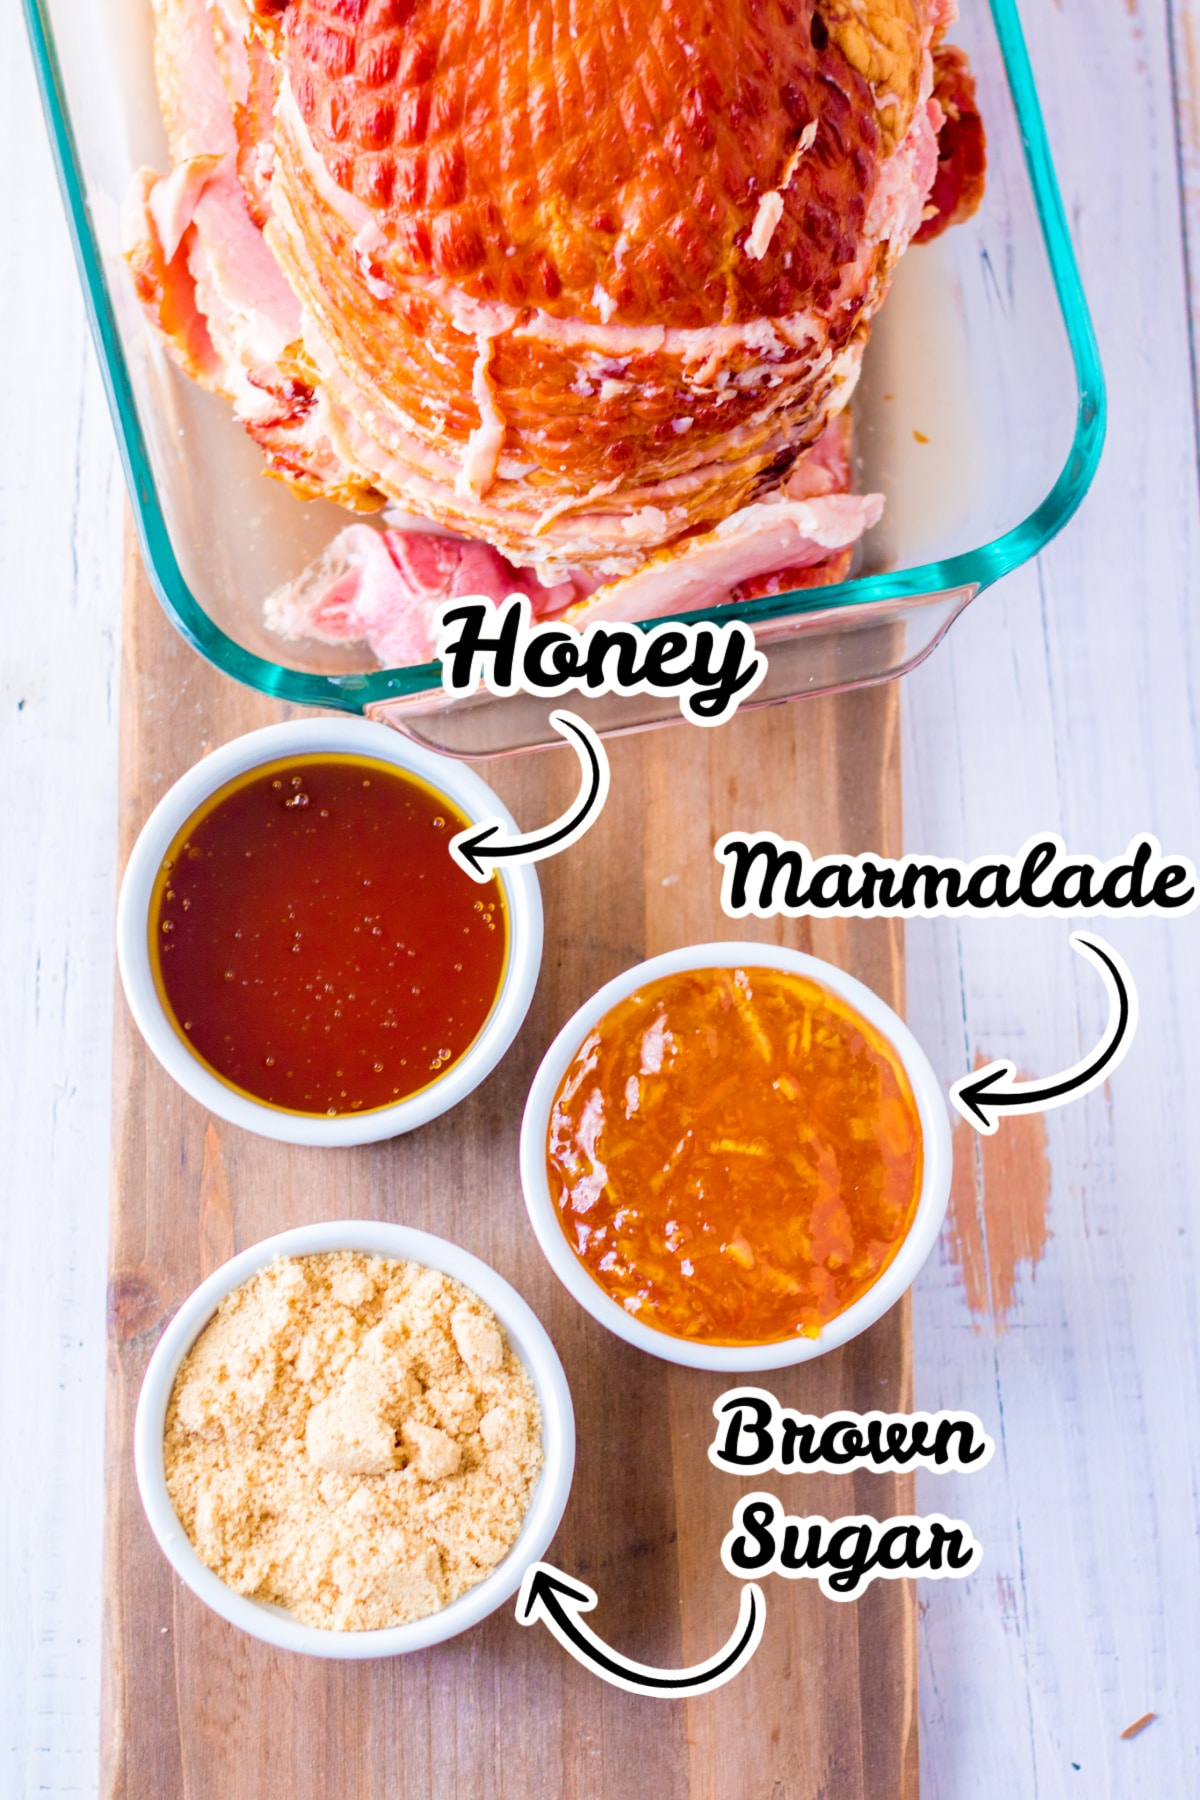 ham in baking dish and ingredients in bowls on cutting board